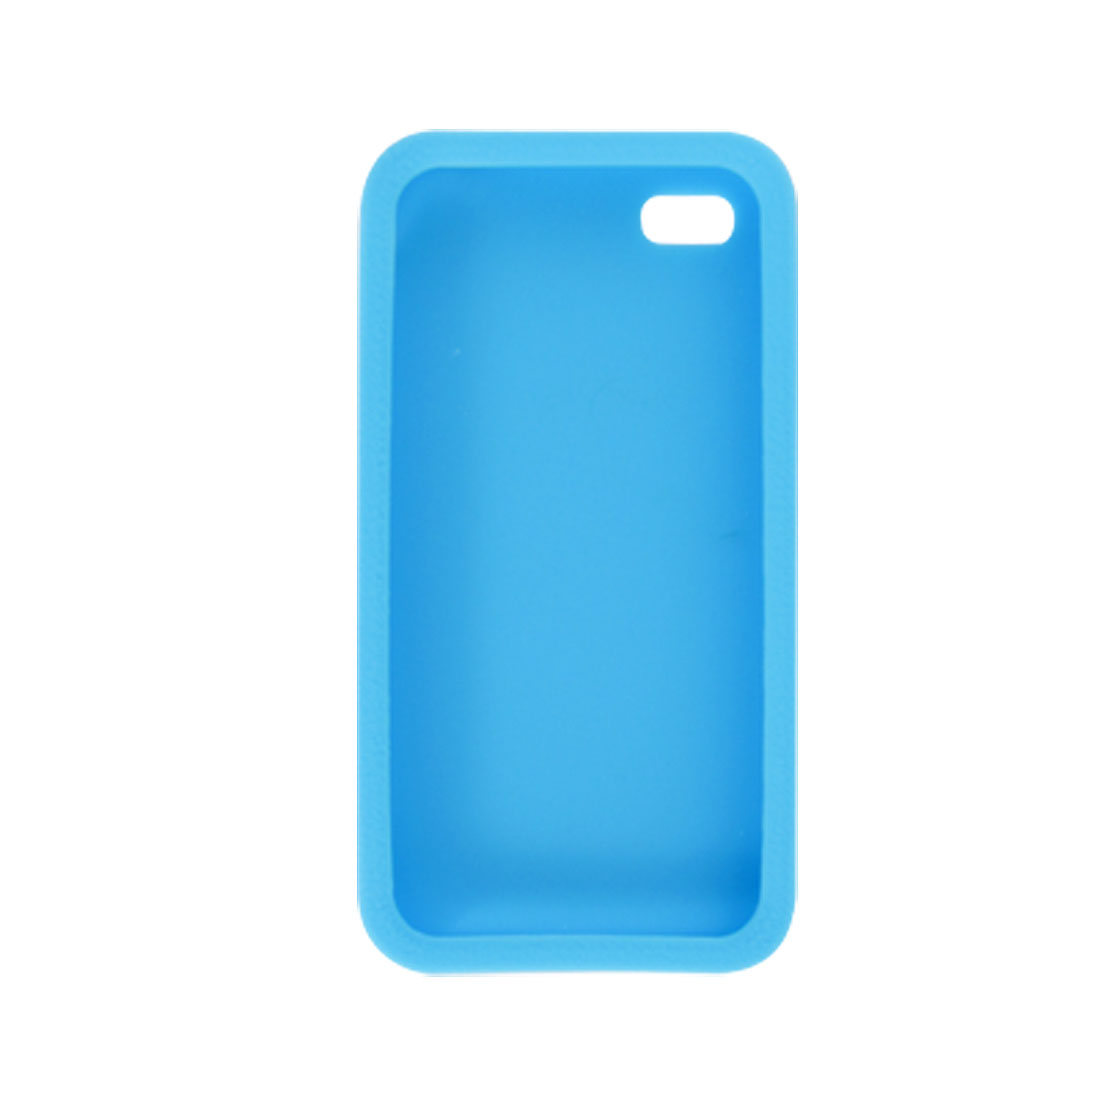 Sky Blue Silicone Soft Skin Case Cover Shell for for Apple iPhone 4 4S